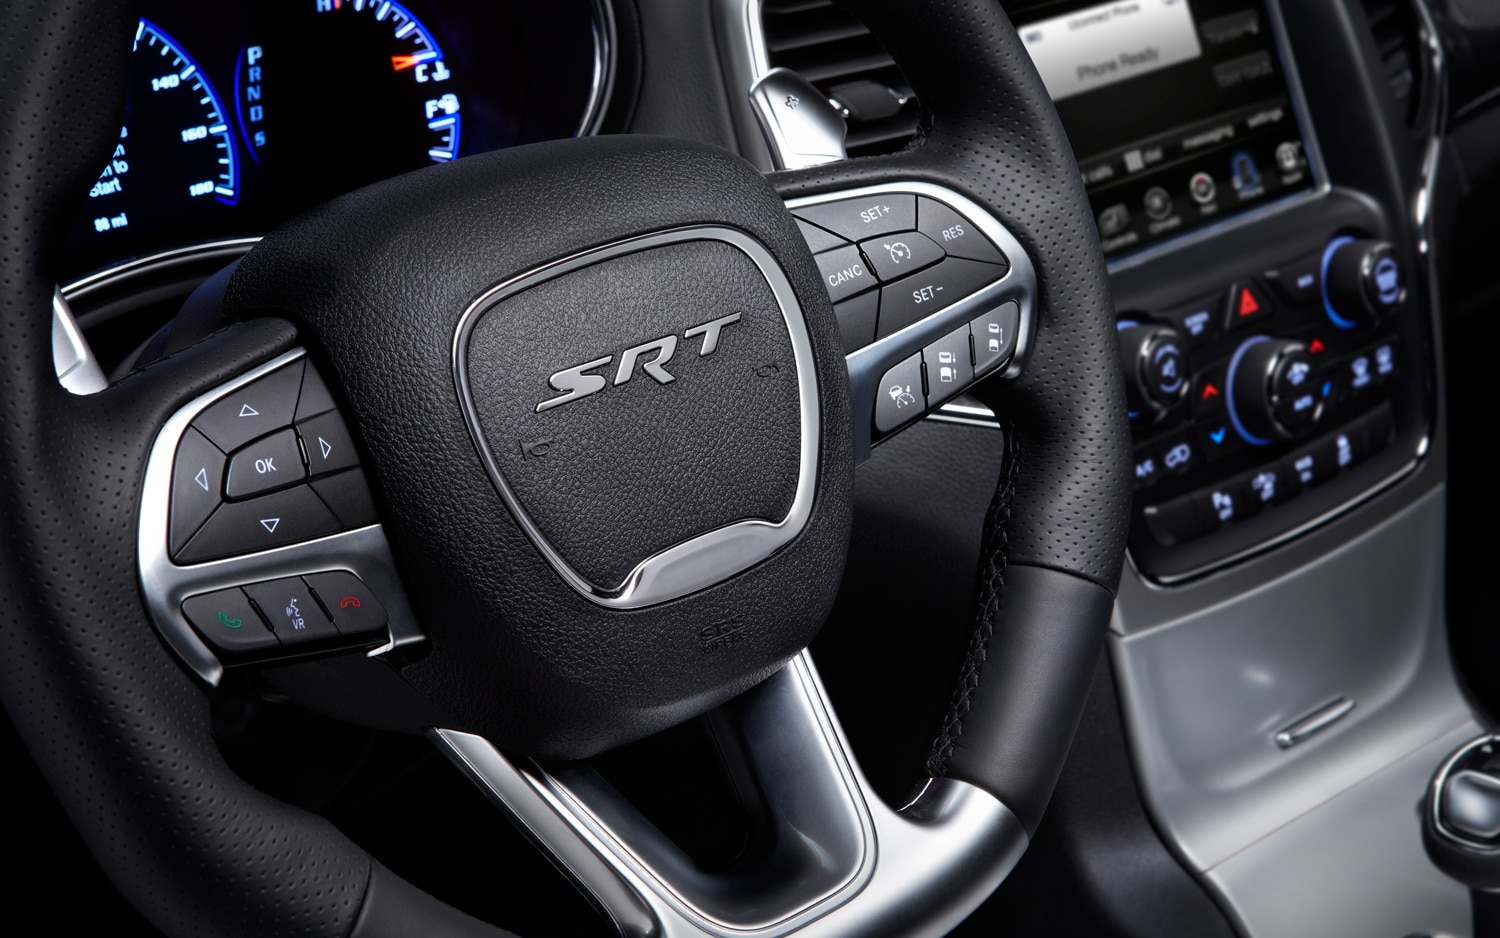 2014 Jeep Grand Cherokee SRT Steering Wheel